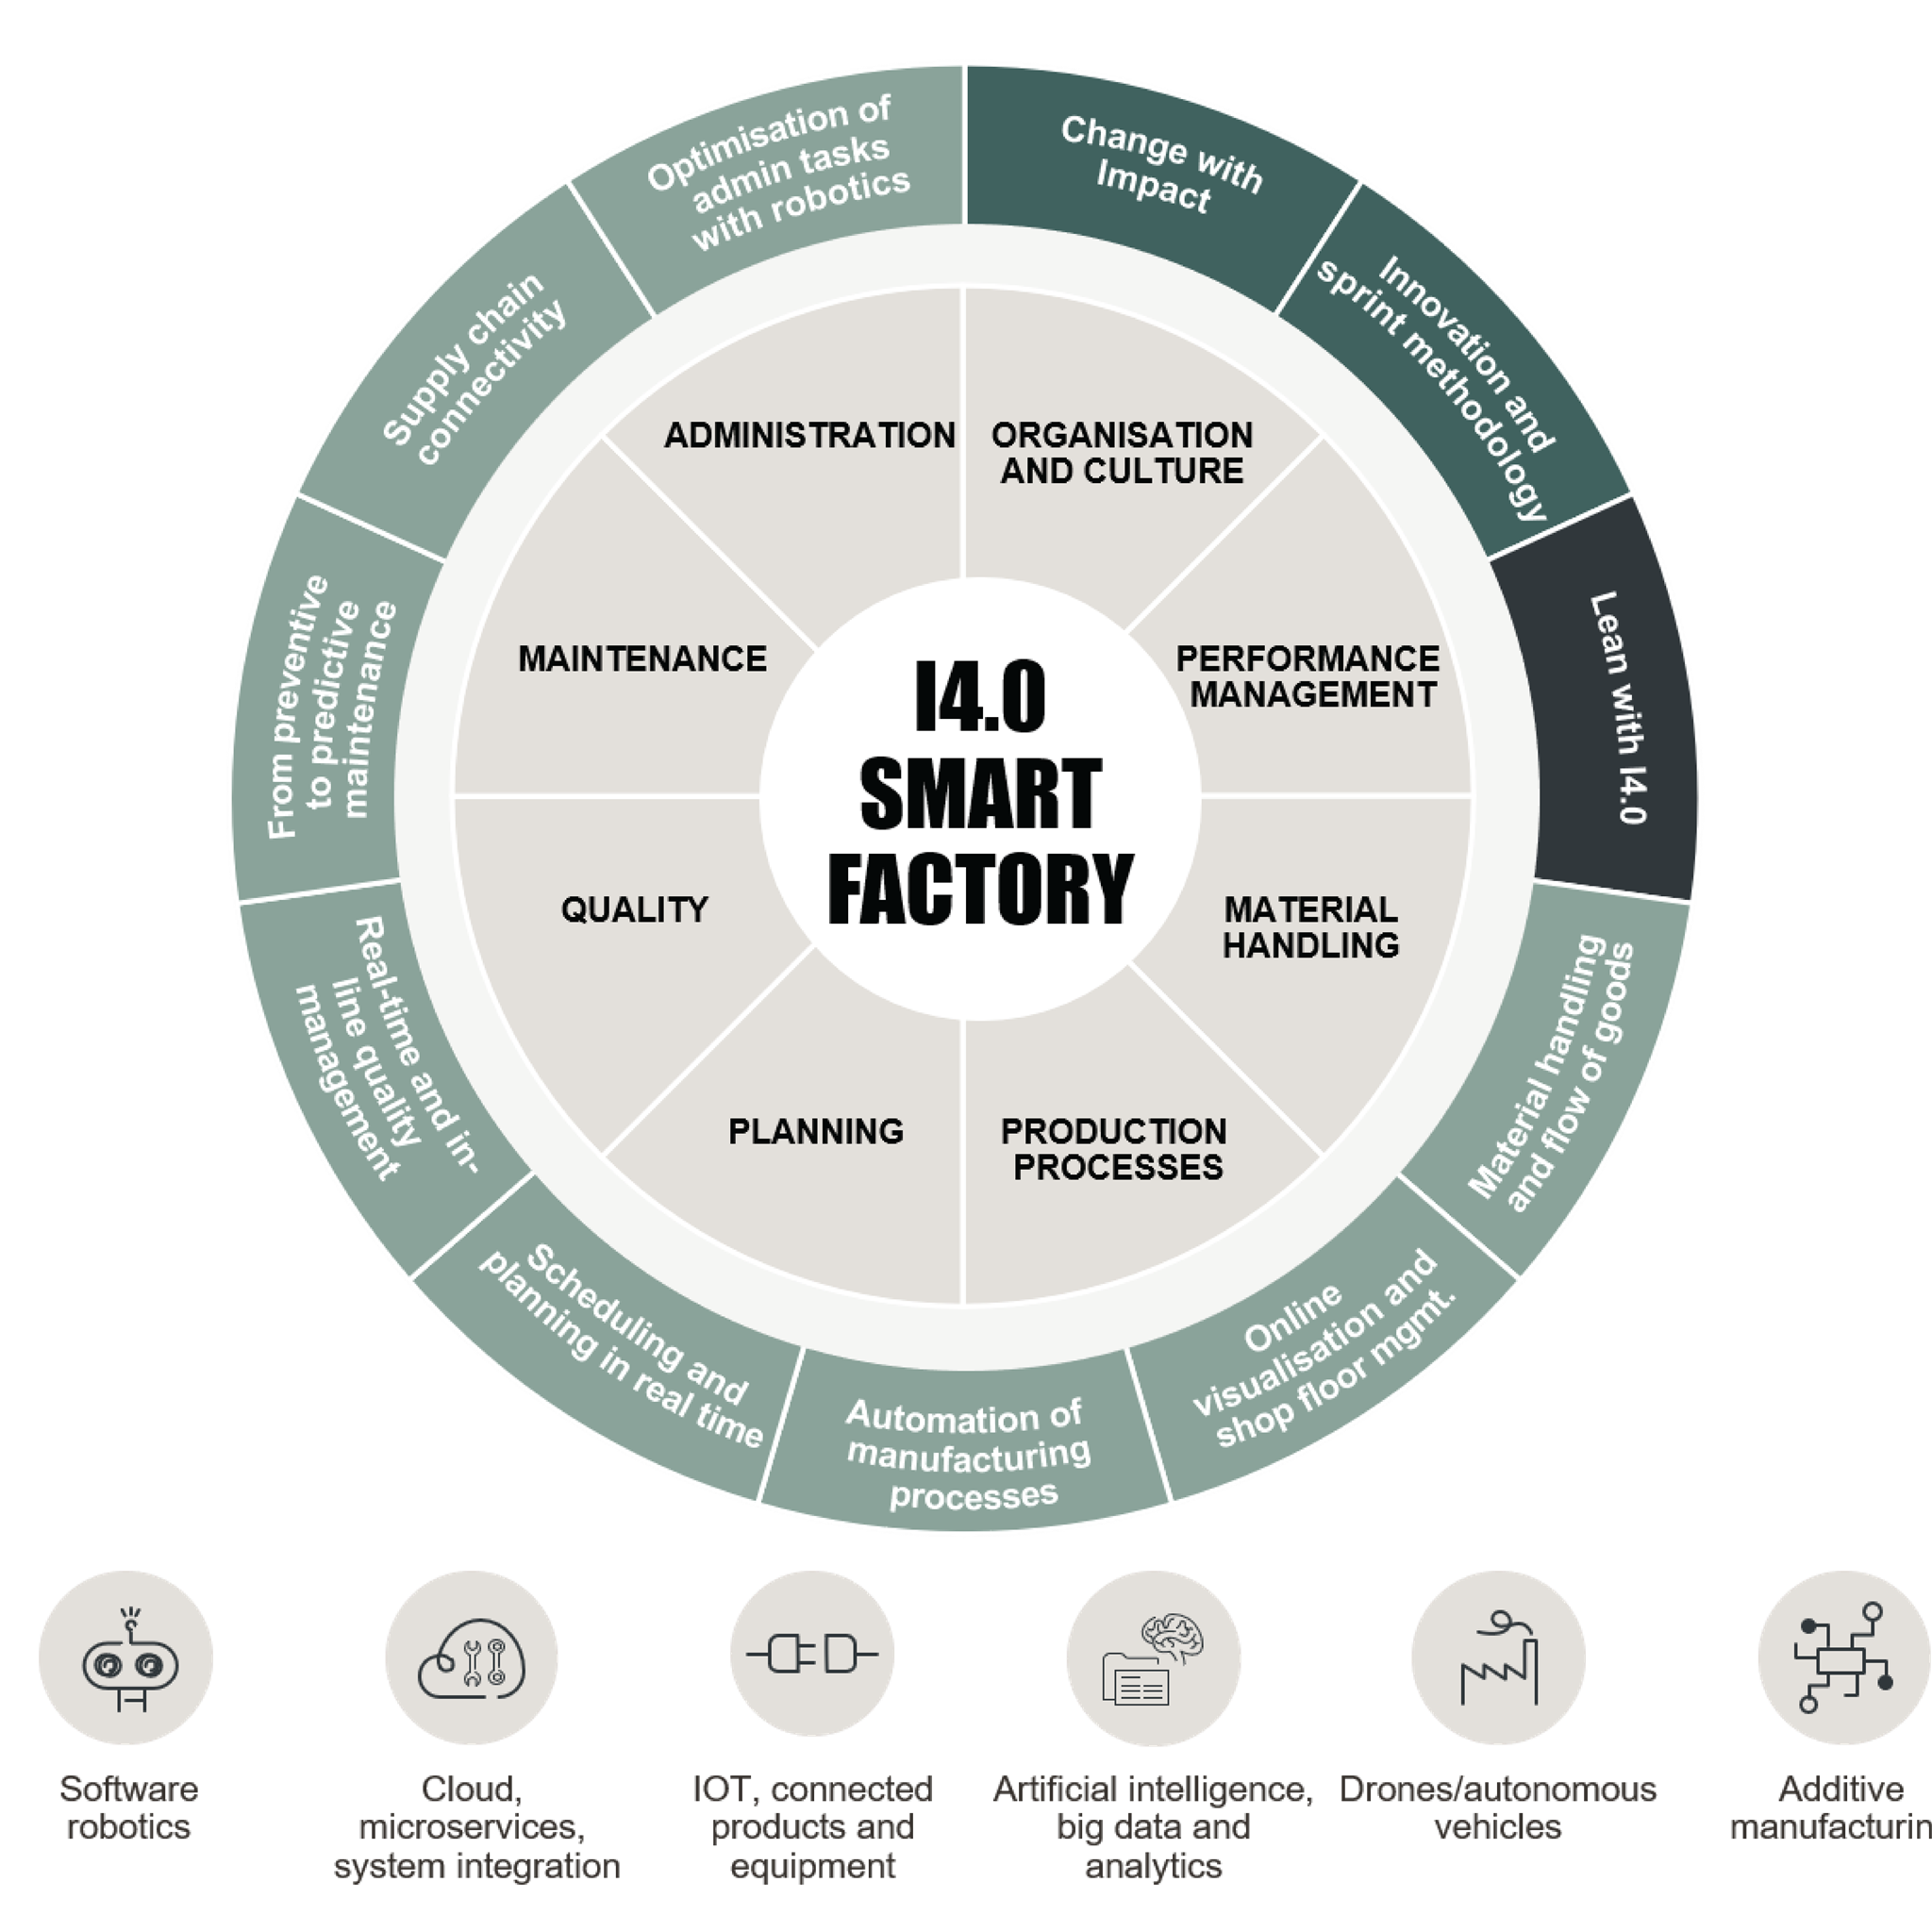 The four main tools and methodologies that we have been using for Factory Turnaround.